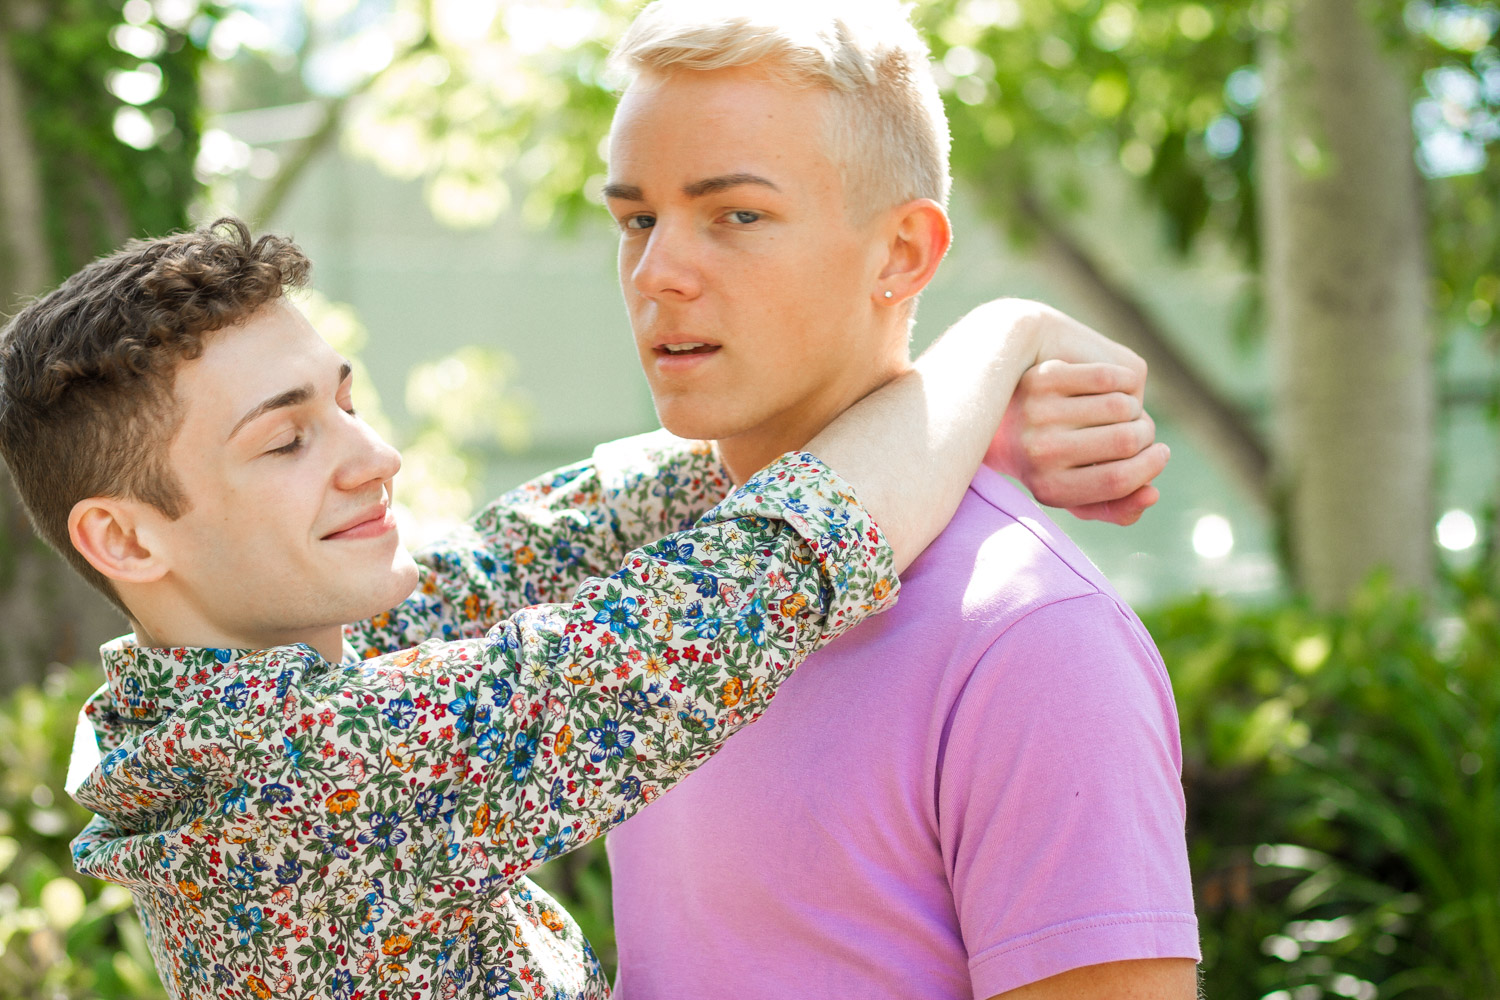 oregon gay personals Poz personals is the fastest growing online community for hiv positive dating.